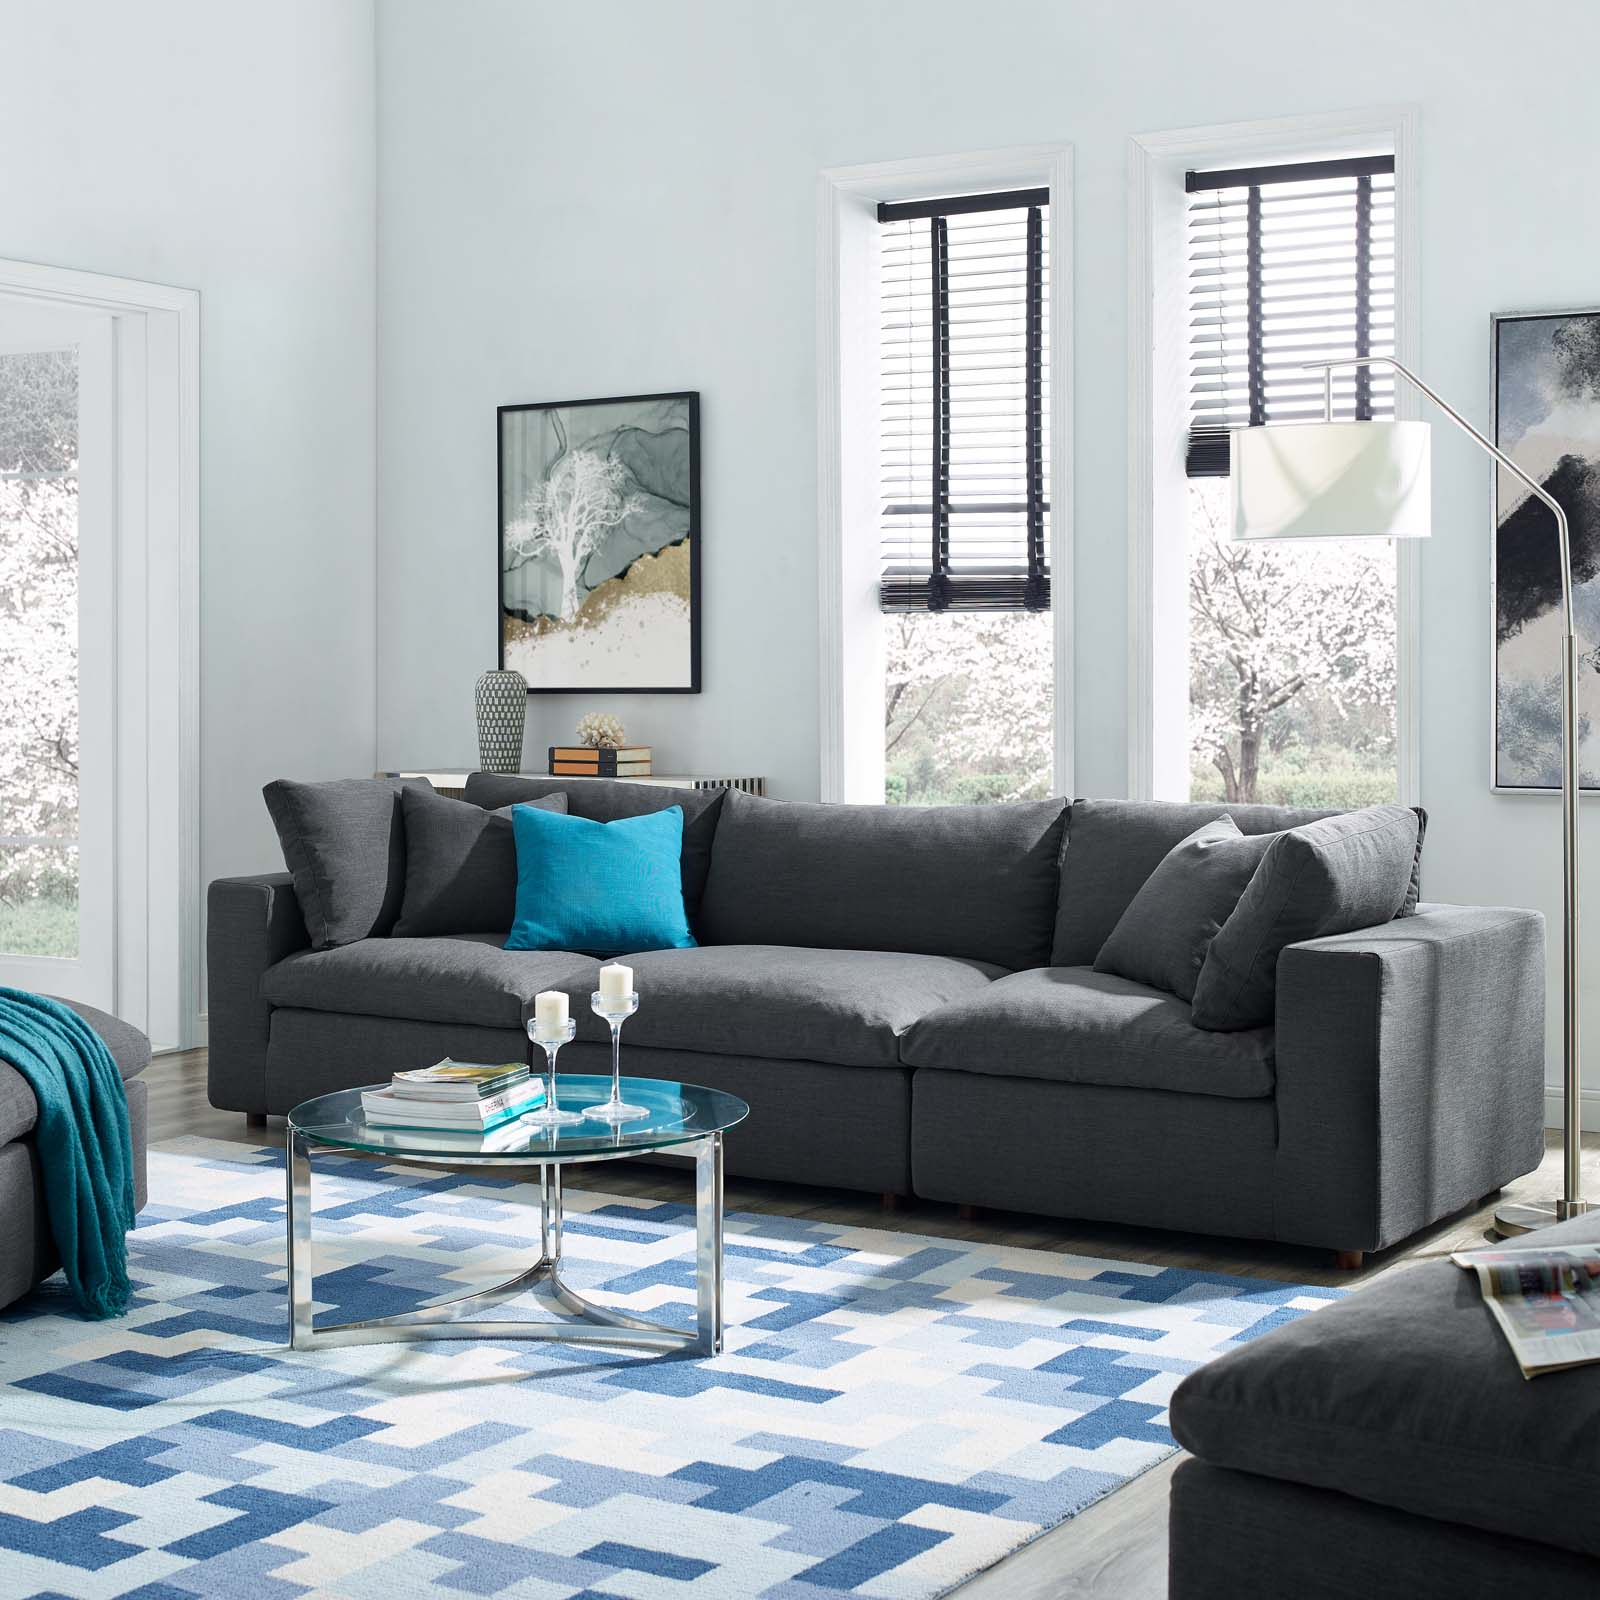 Commix Down Filled Overstuffed 3 Piece Sectional Sofa Set For 3Pc Polyfiber Sectional Sofas (View 13 of 15)